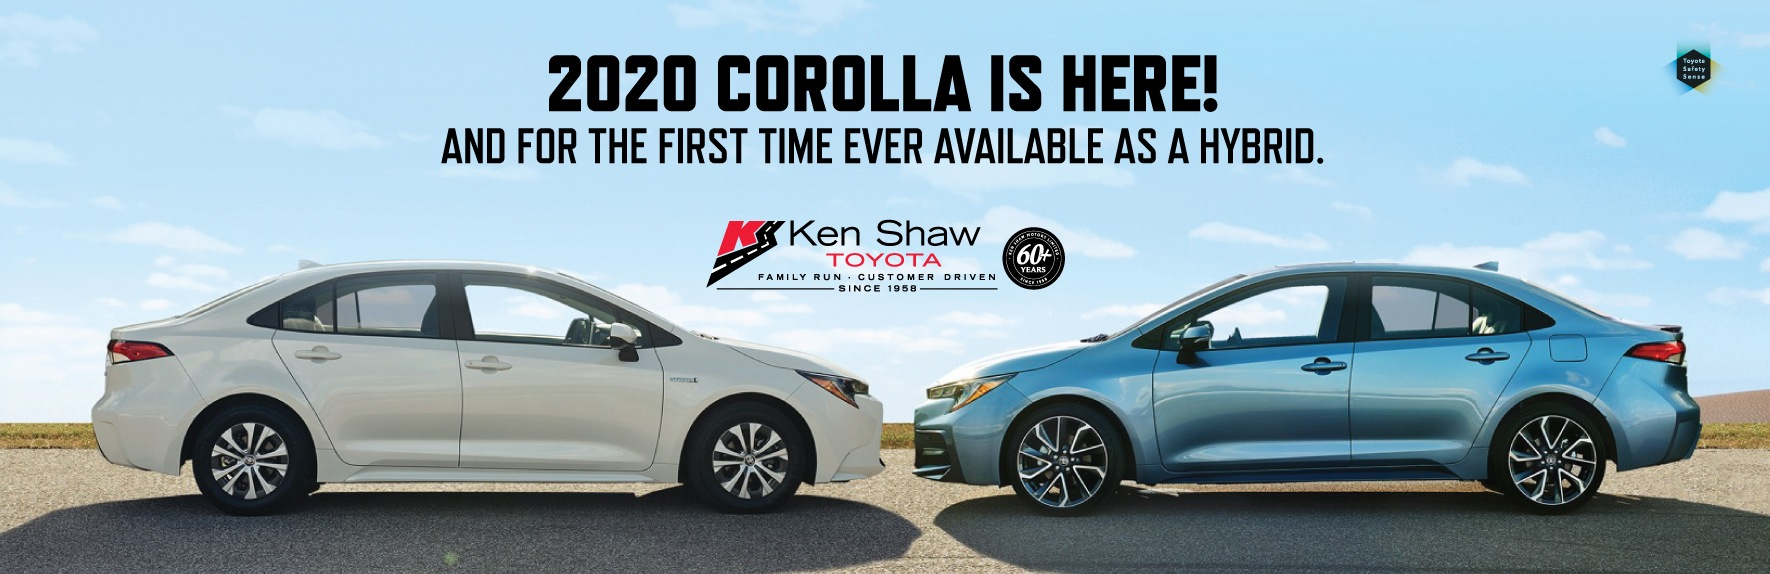 2020 Toyota Corolla Hybrid on sale at Ken Shaw Toyota dealership in Toronto Ontario